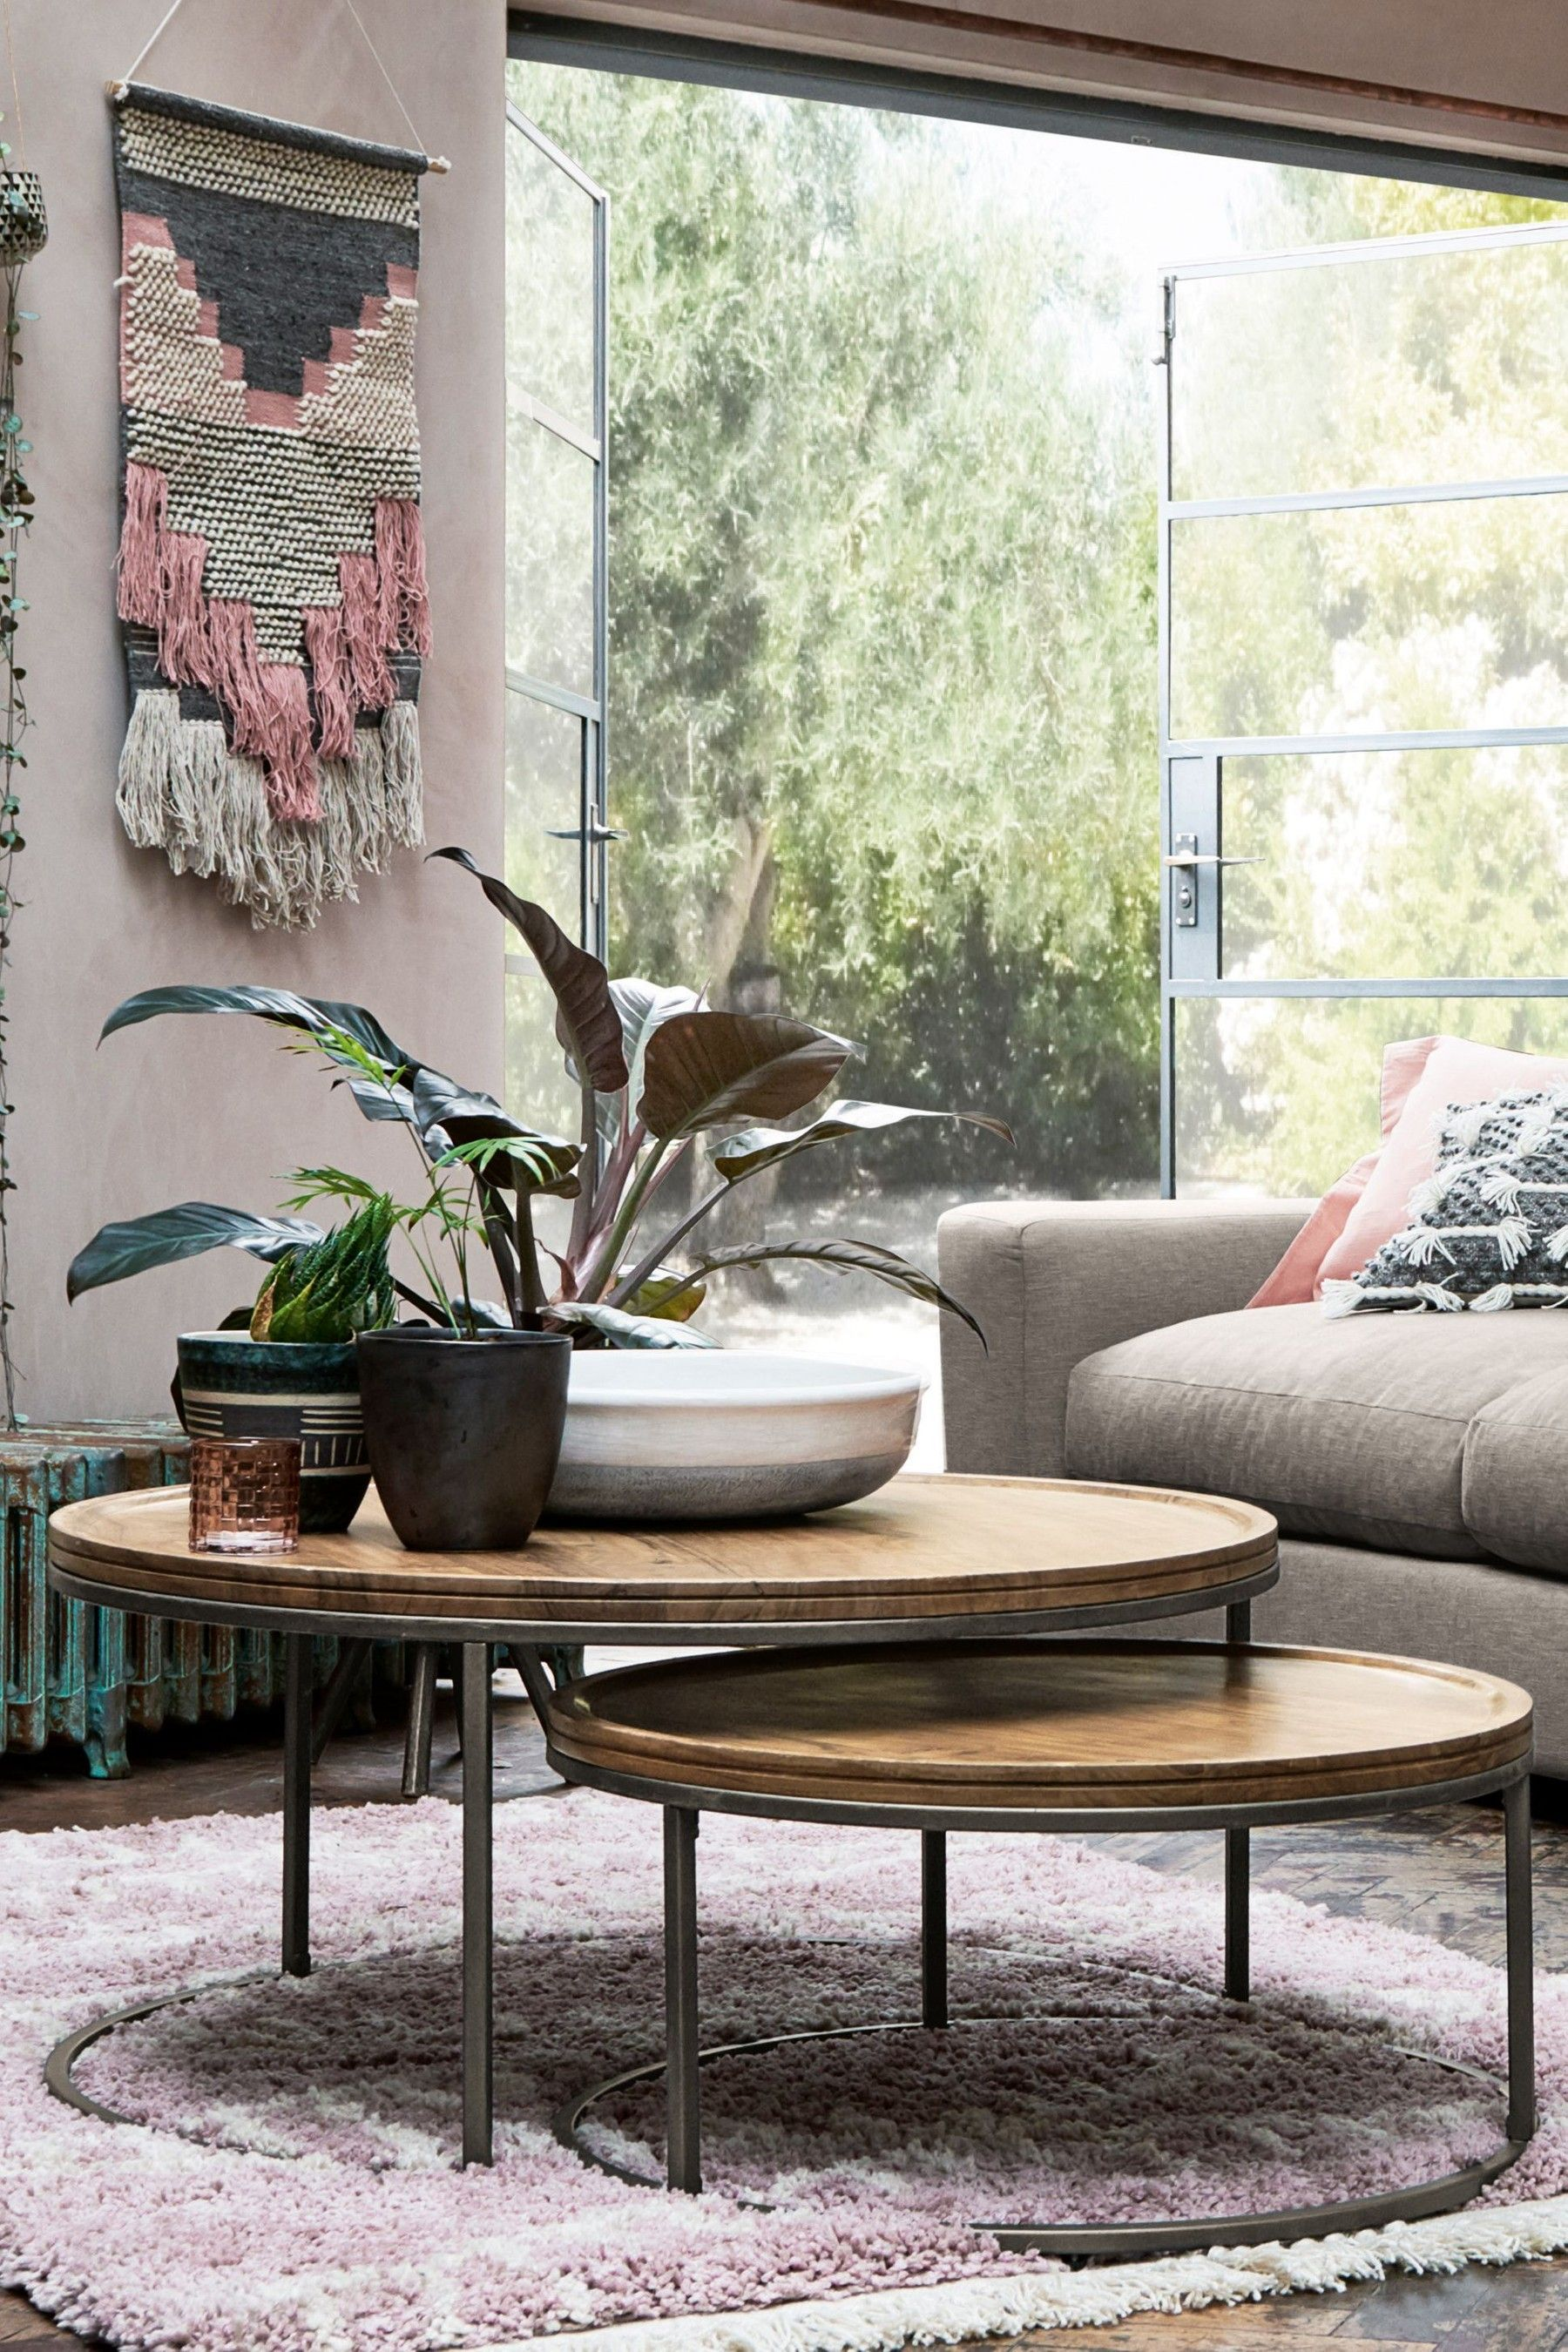 Amsterdam Nest Of 2 Coffee Tables Coffee Table Round Coffee Table Living Room Nesting Coffee Tables [ 2700 x 1800 Pixel ]